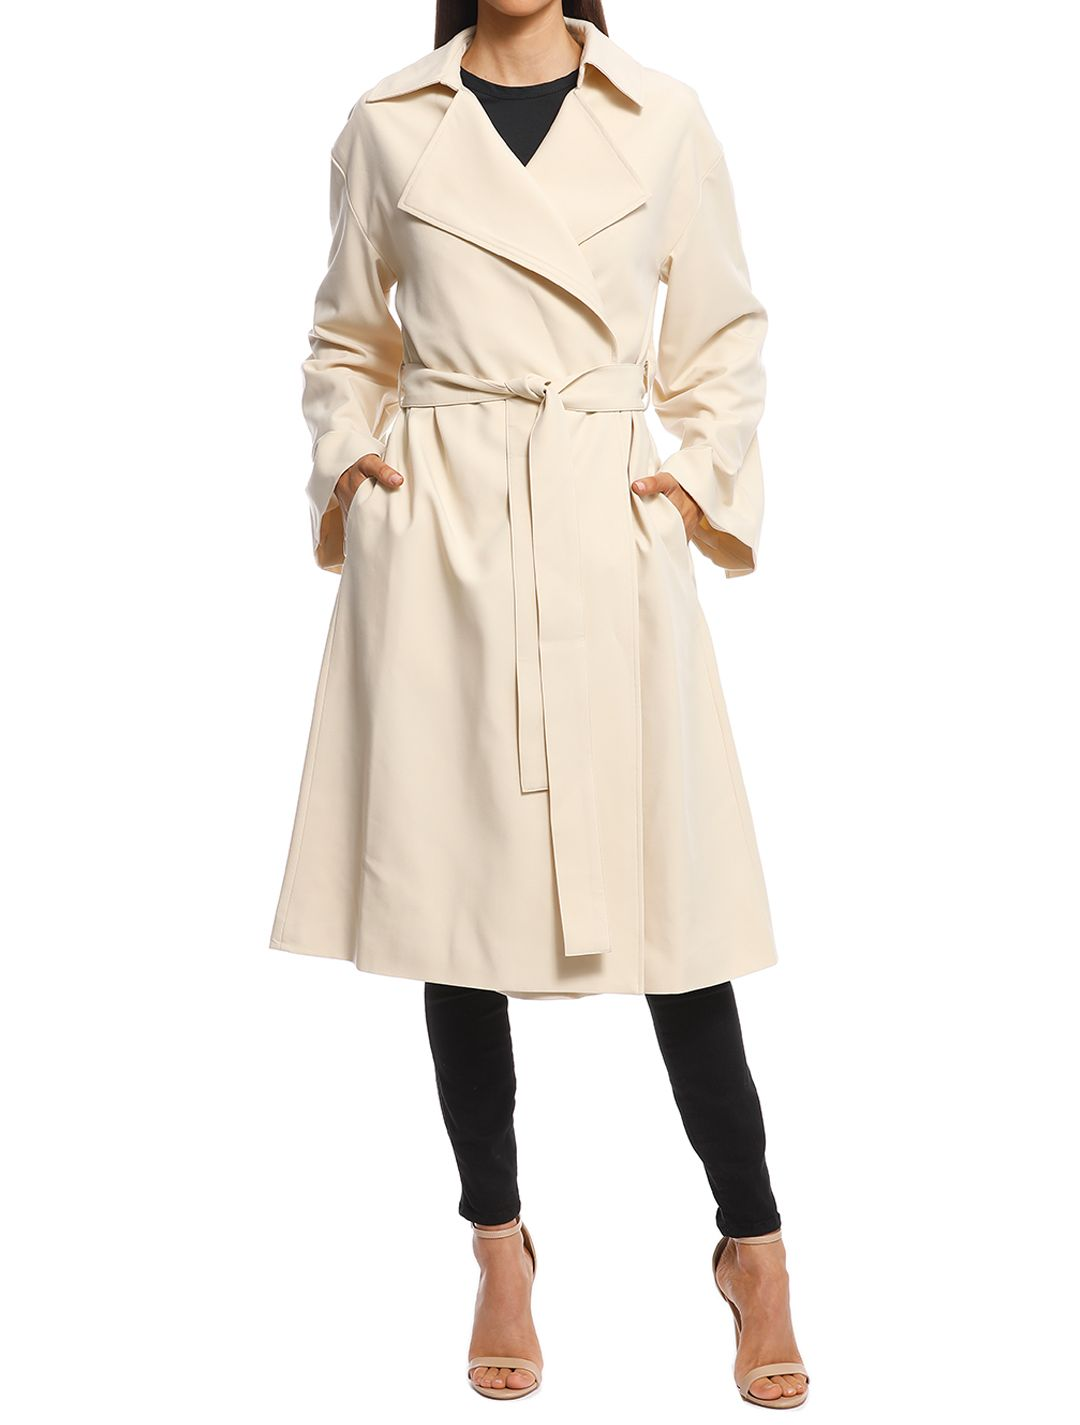 Friend of Audrey - Emerson Oversized Trench Coat - Sand - Front